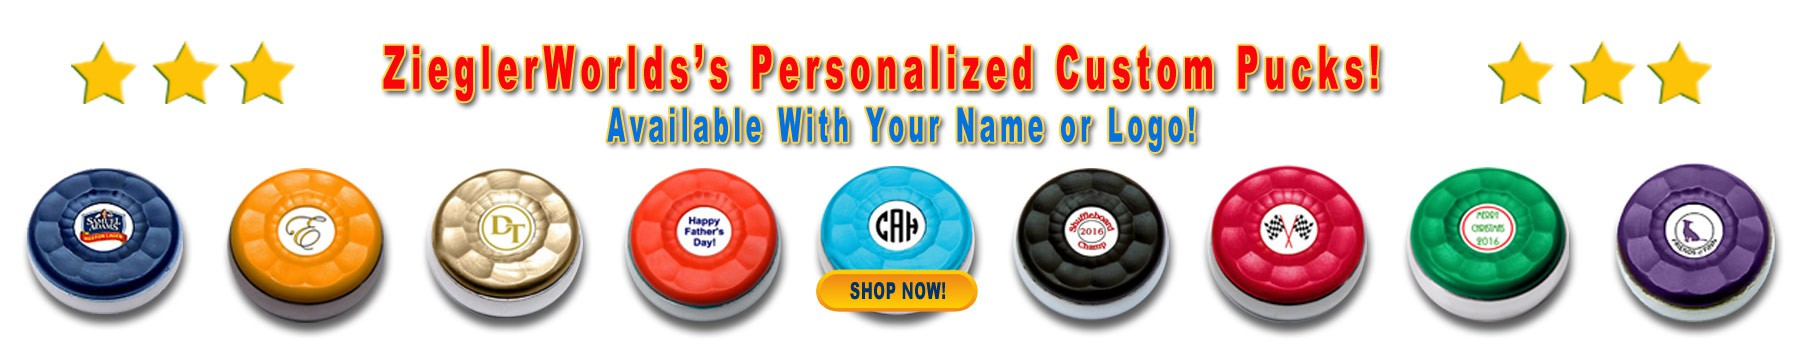 ZieglerWorld Custom Table Shuffleboard Pucks